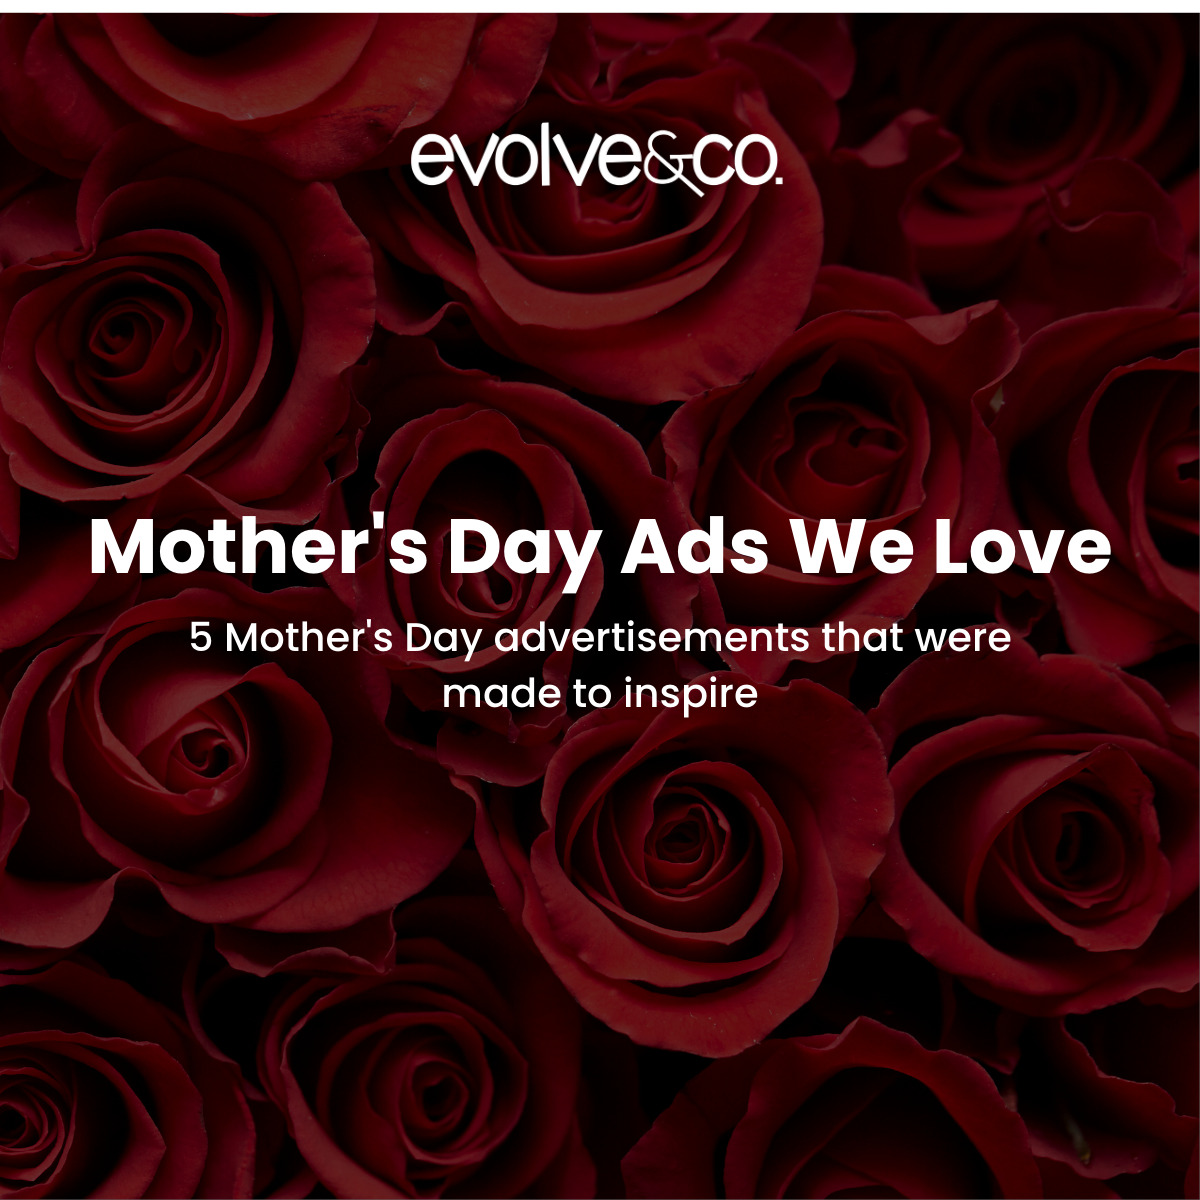 Mother's Day Ads We Love